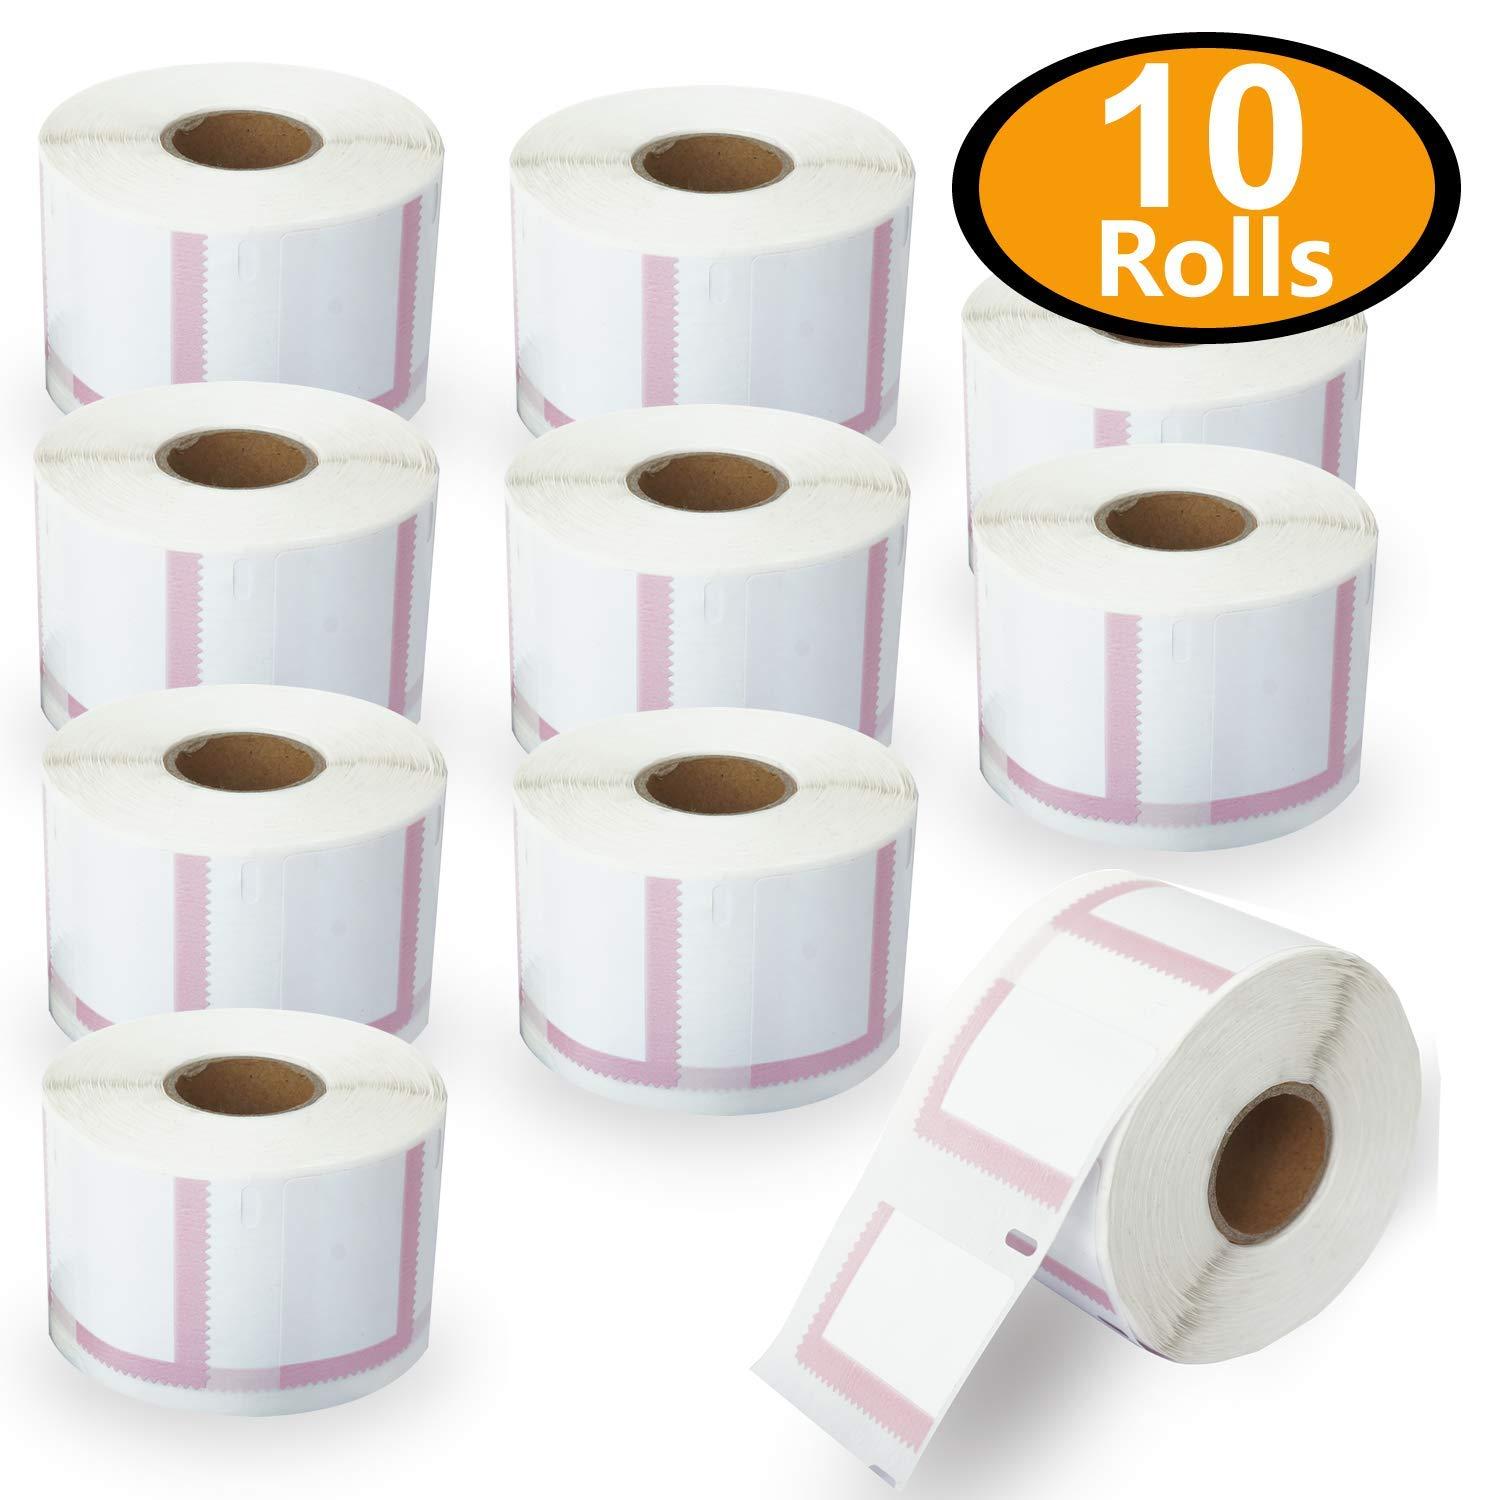 """10 Rolls Dymo 30915 Compatible 1-5/8"""" X 1-1/4"""" Endicia Internet Postage Stamps Labels(Paid Endicia Users Only)"""